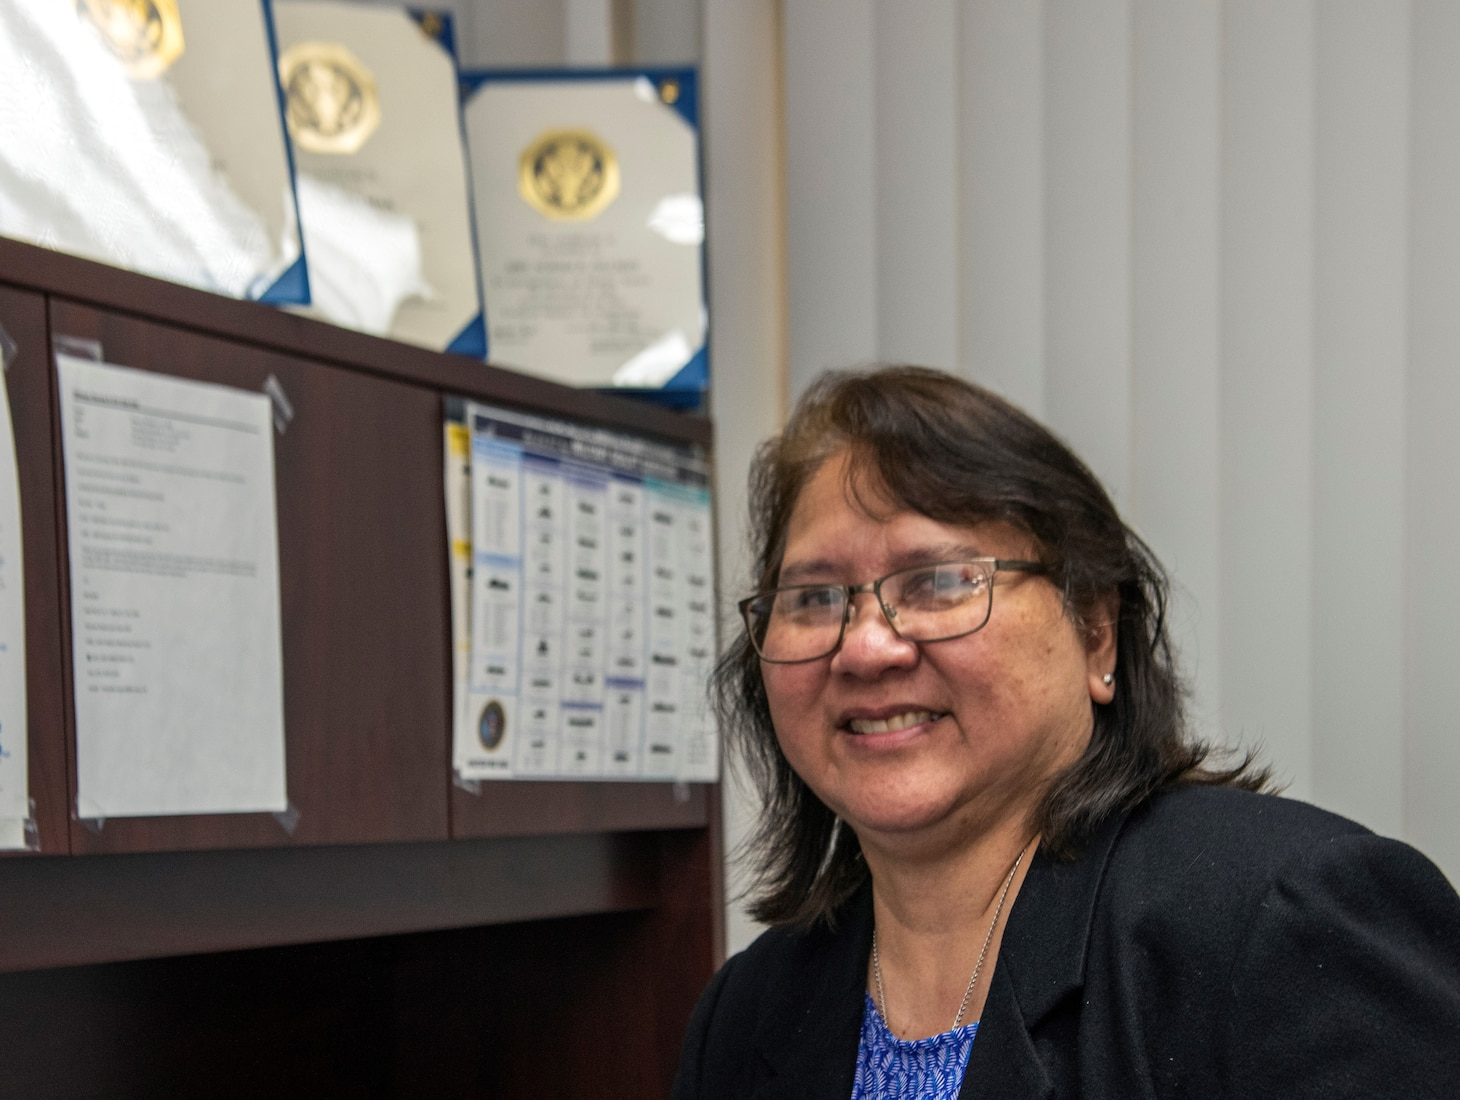 Norma Pillman has dedicated her entire 40-year career to serving the U.S. Government, the last 24 with Military Sealift Command.